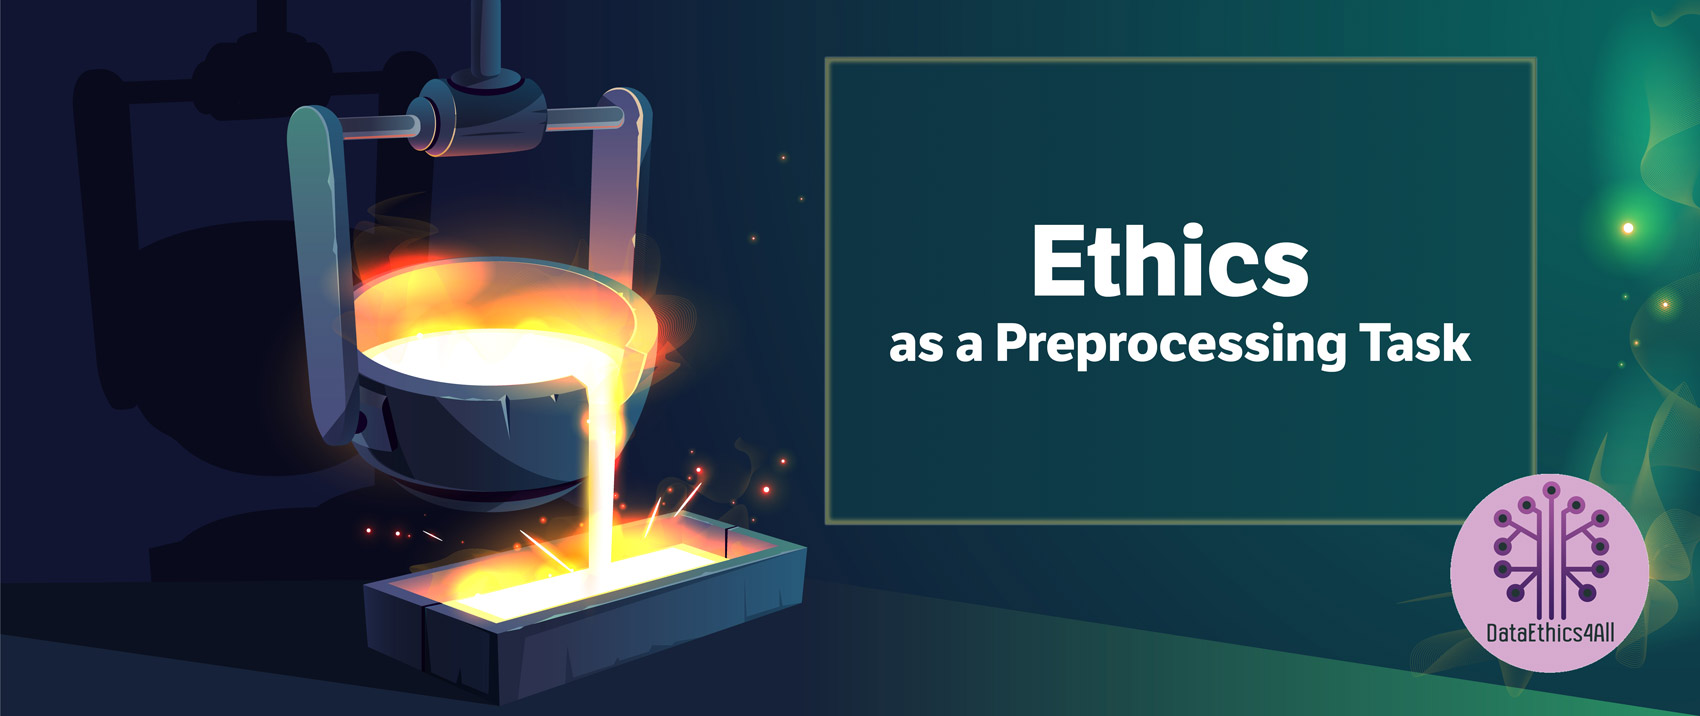 Ethics-as-a-Preprocessing-Task-DataEthics4All-AI-DIET-Magazine